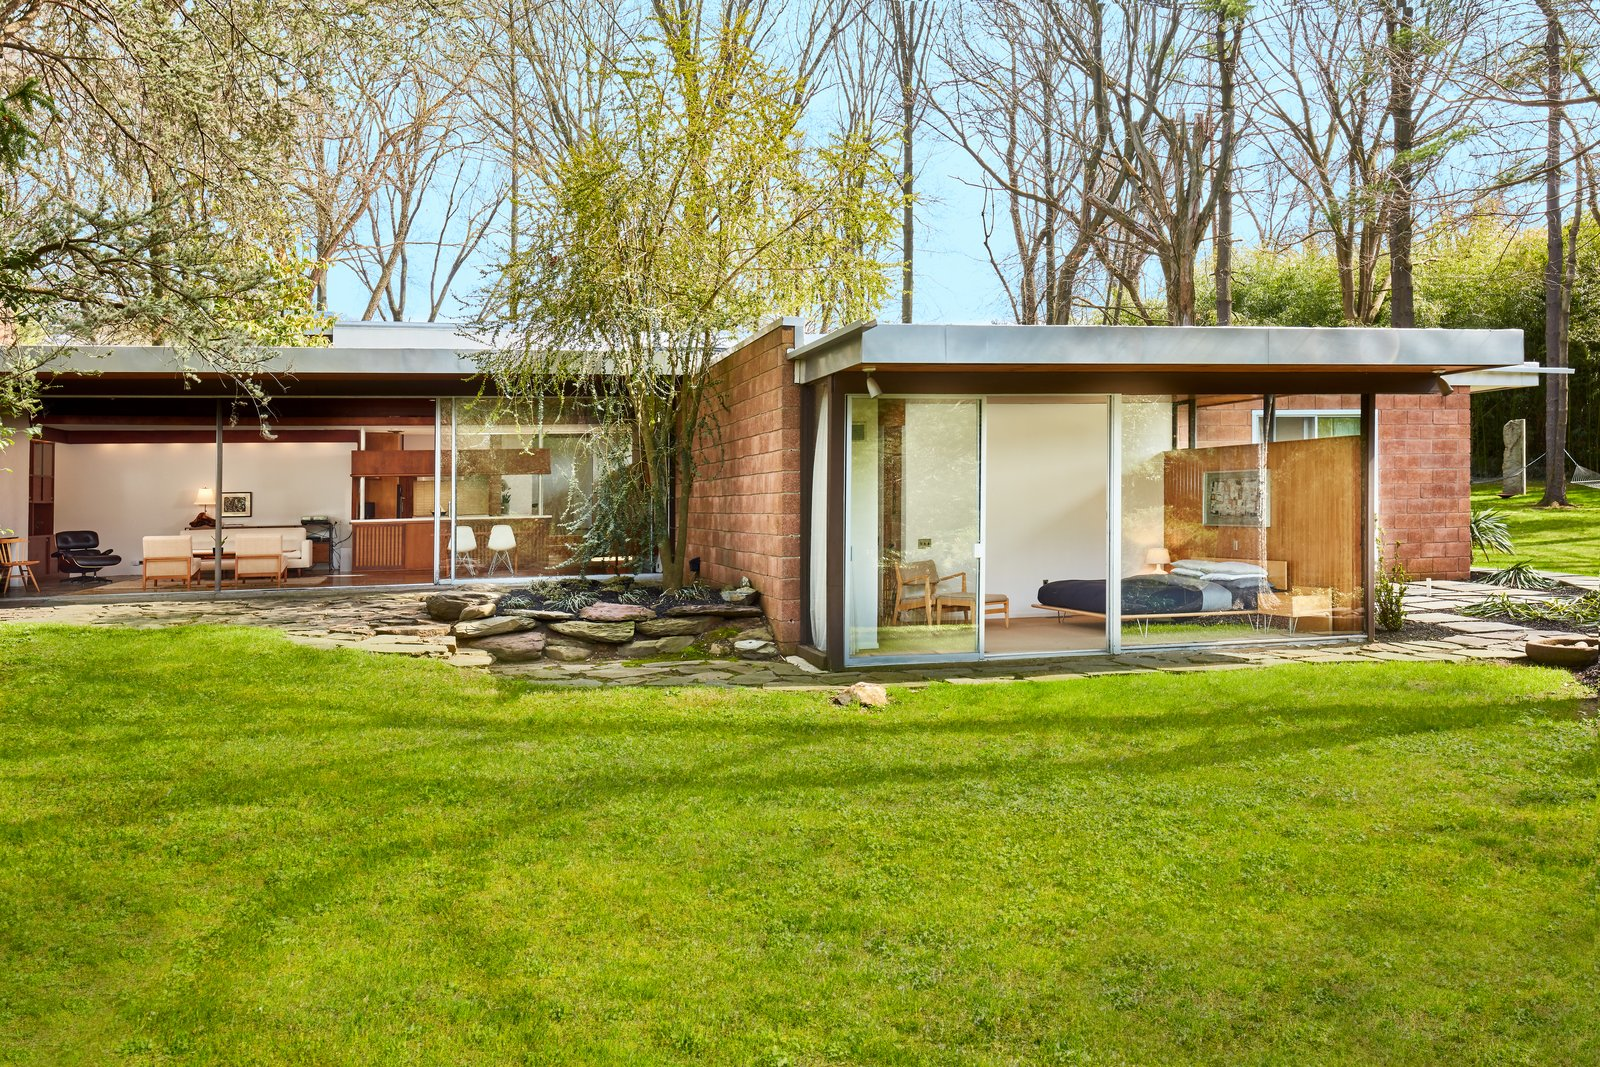 Outdoor, Grass, and Back Yard  Photo 1 of 13 in The Stunningly Restored Hassrick Residence by Richard Neutra Hits the Market at $2.2M